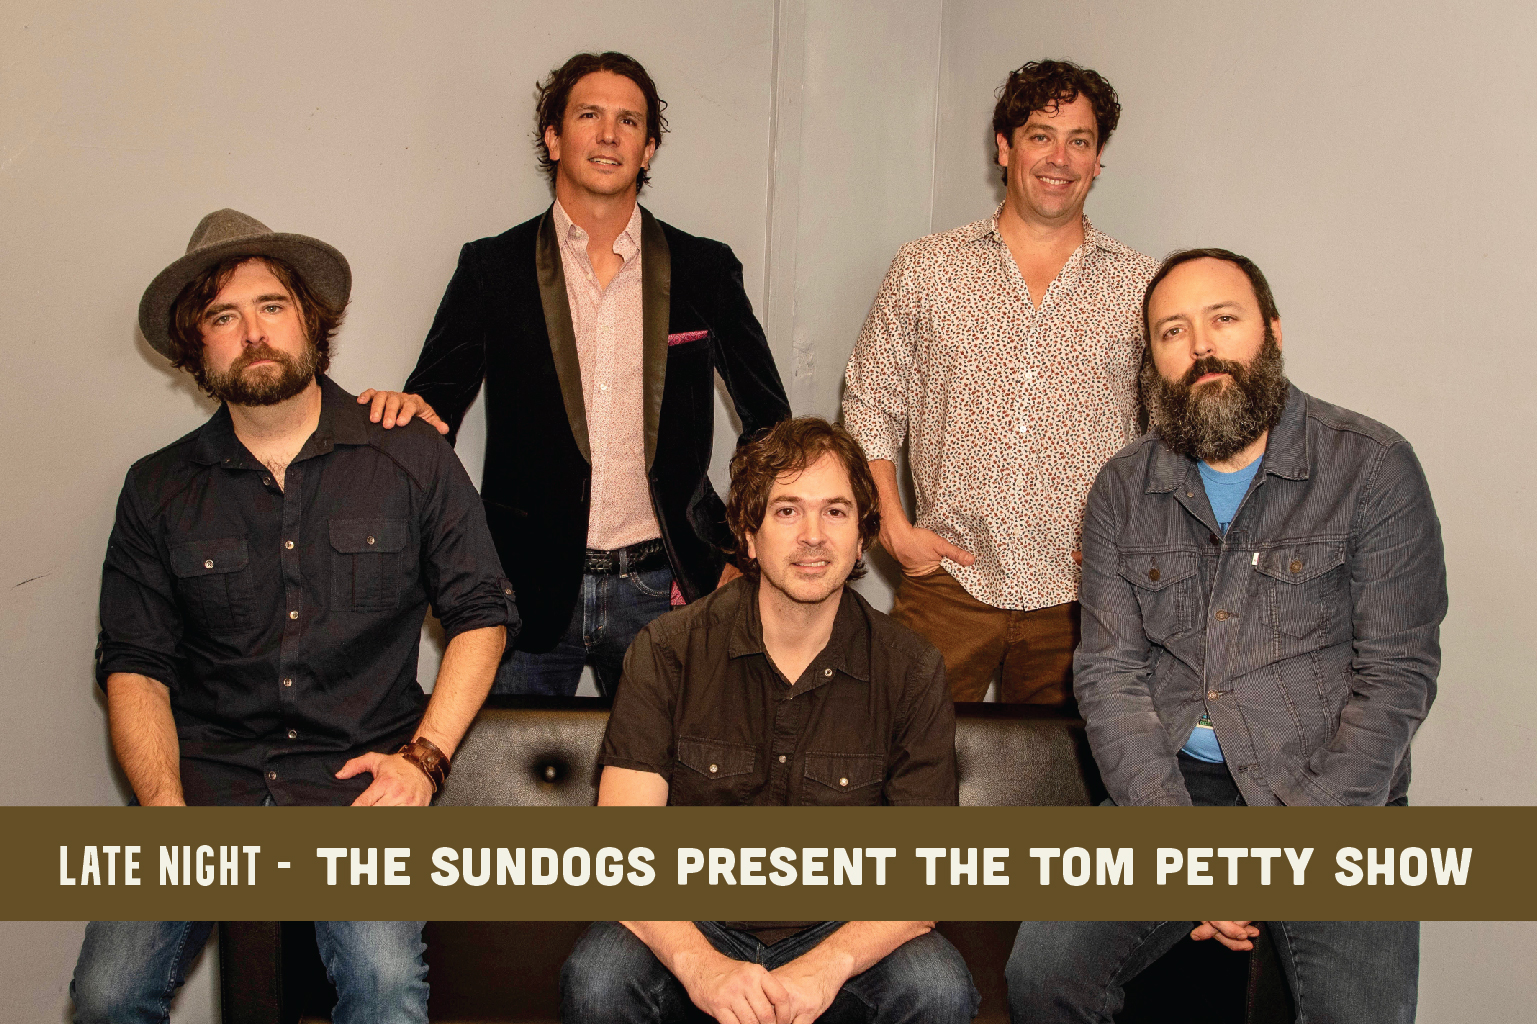 The Sundogs Present The Tom Petty Show